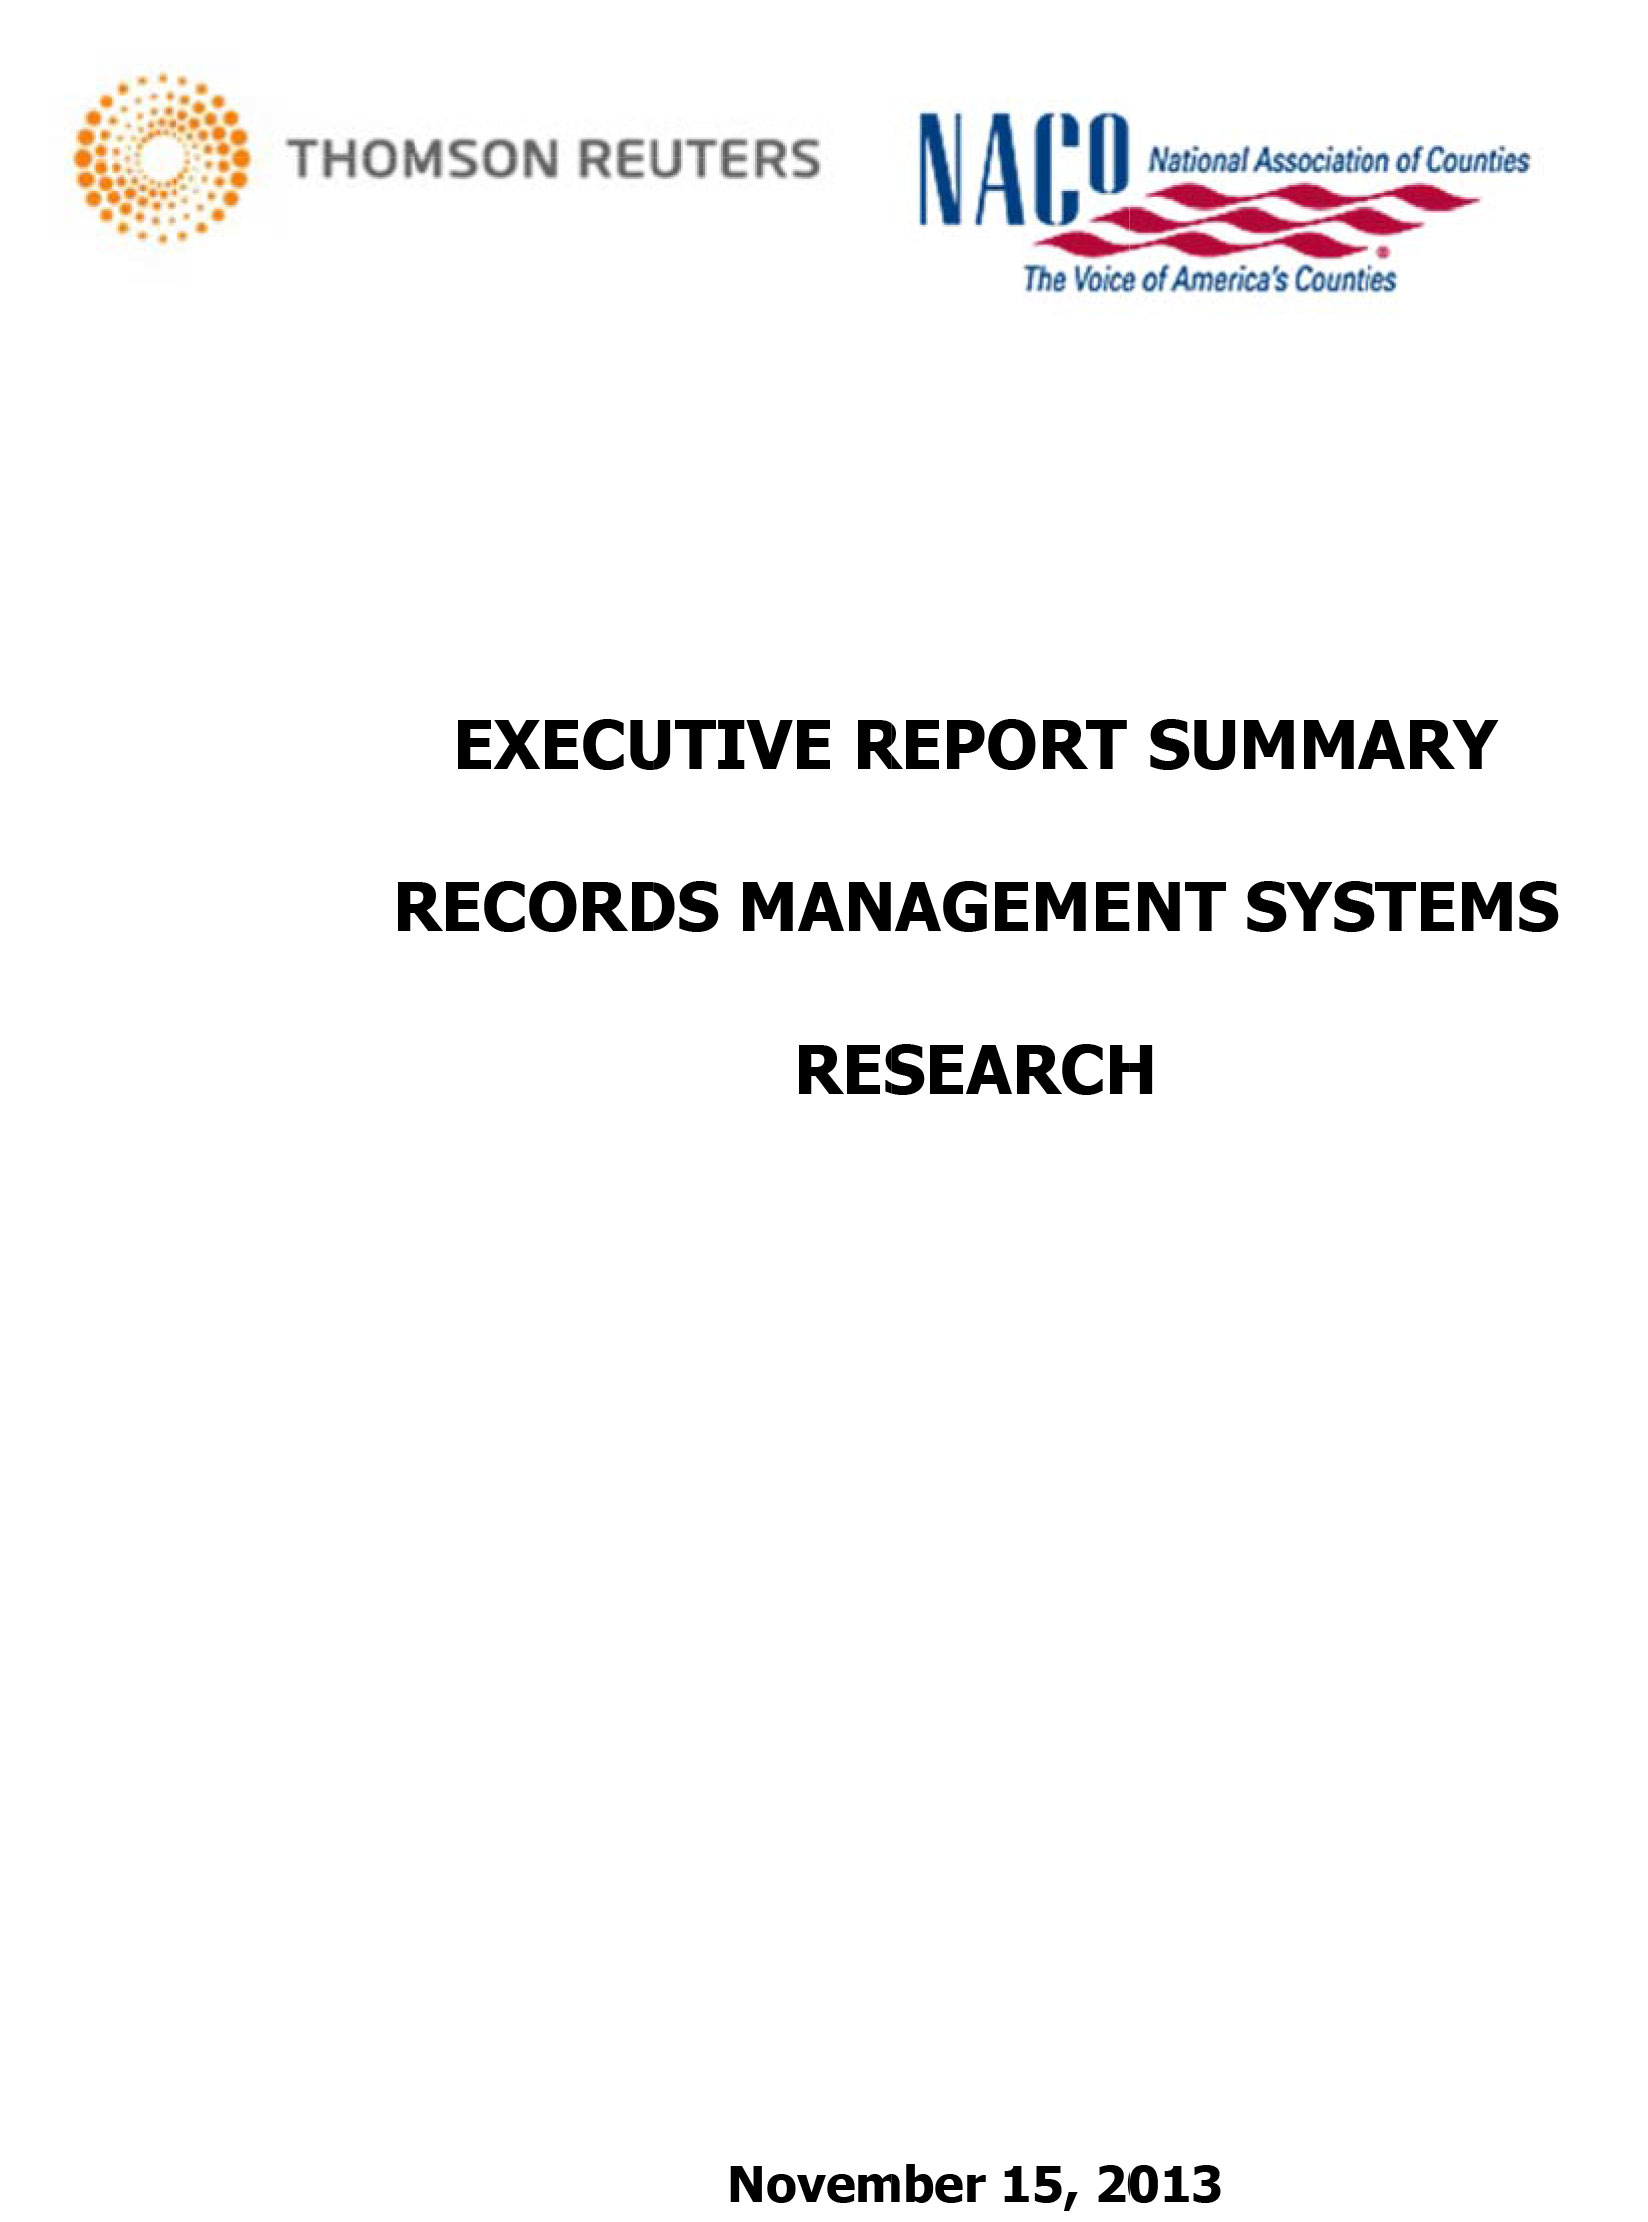 Records Management Systems Research thumbnail